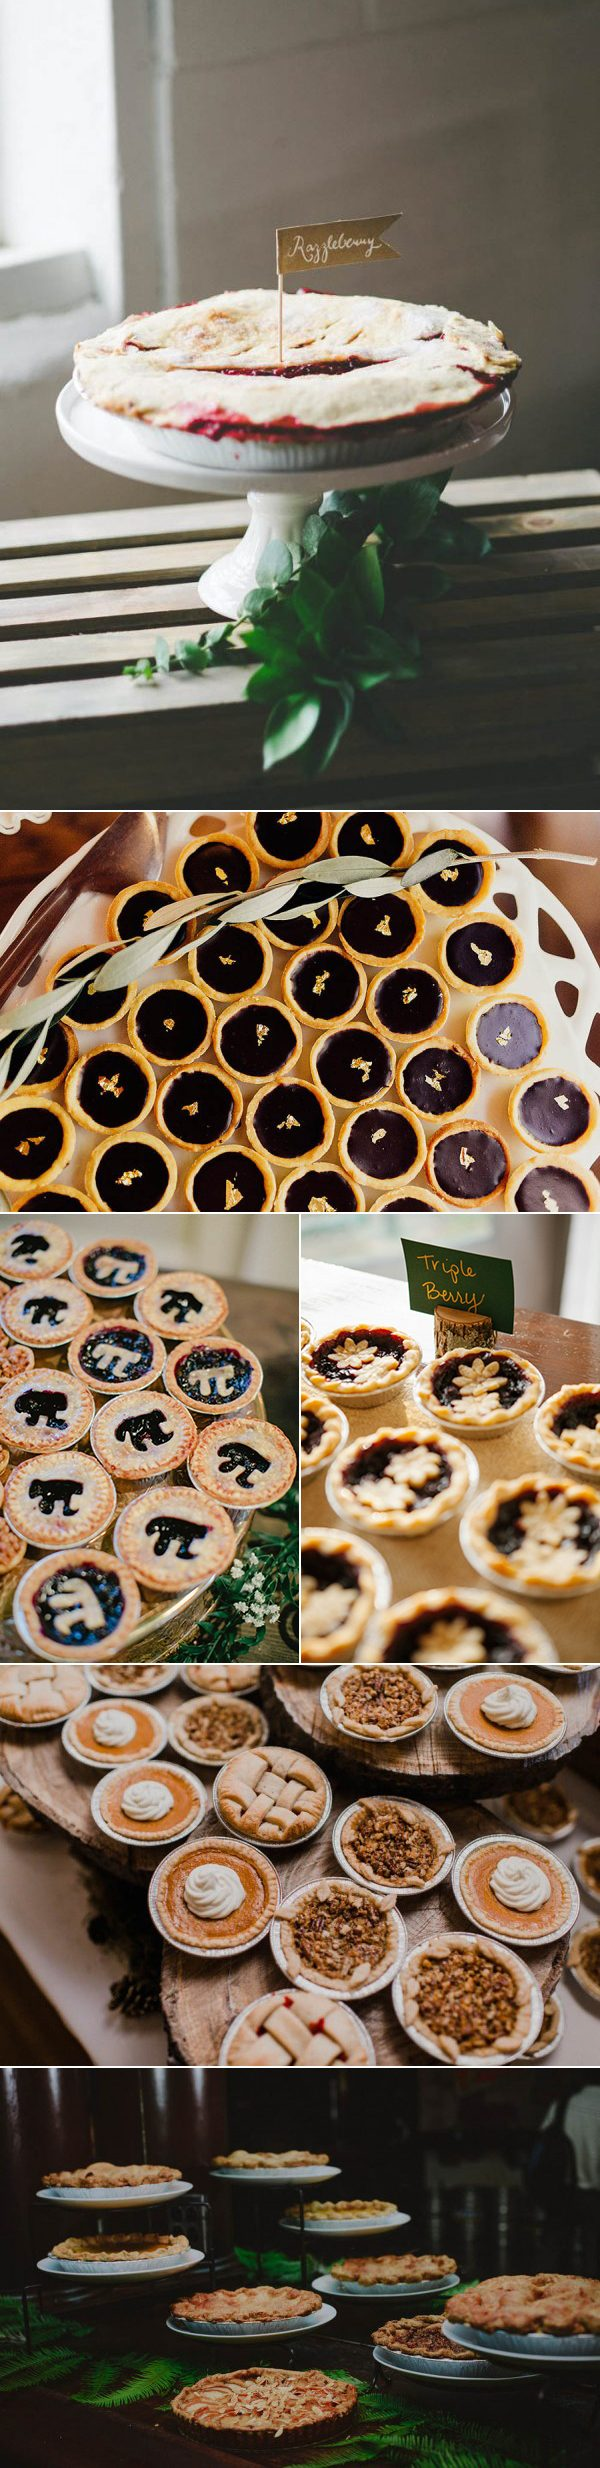 wedding-pie-displays